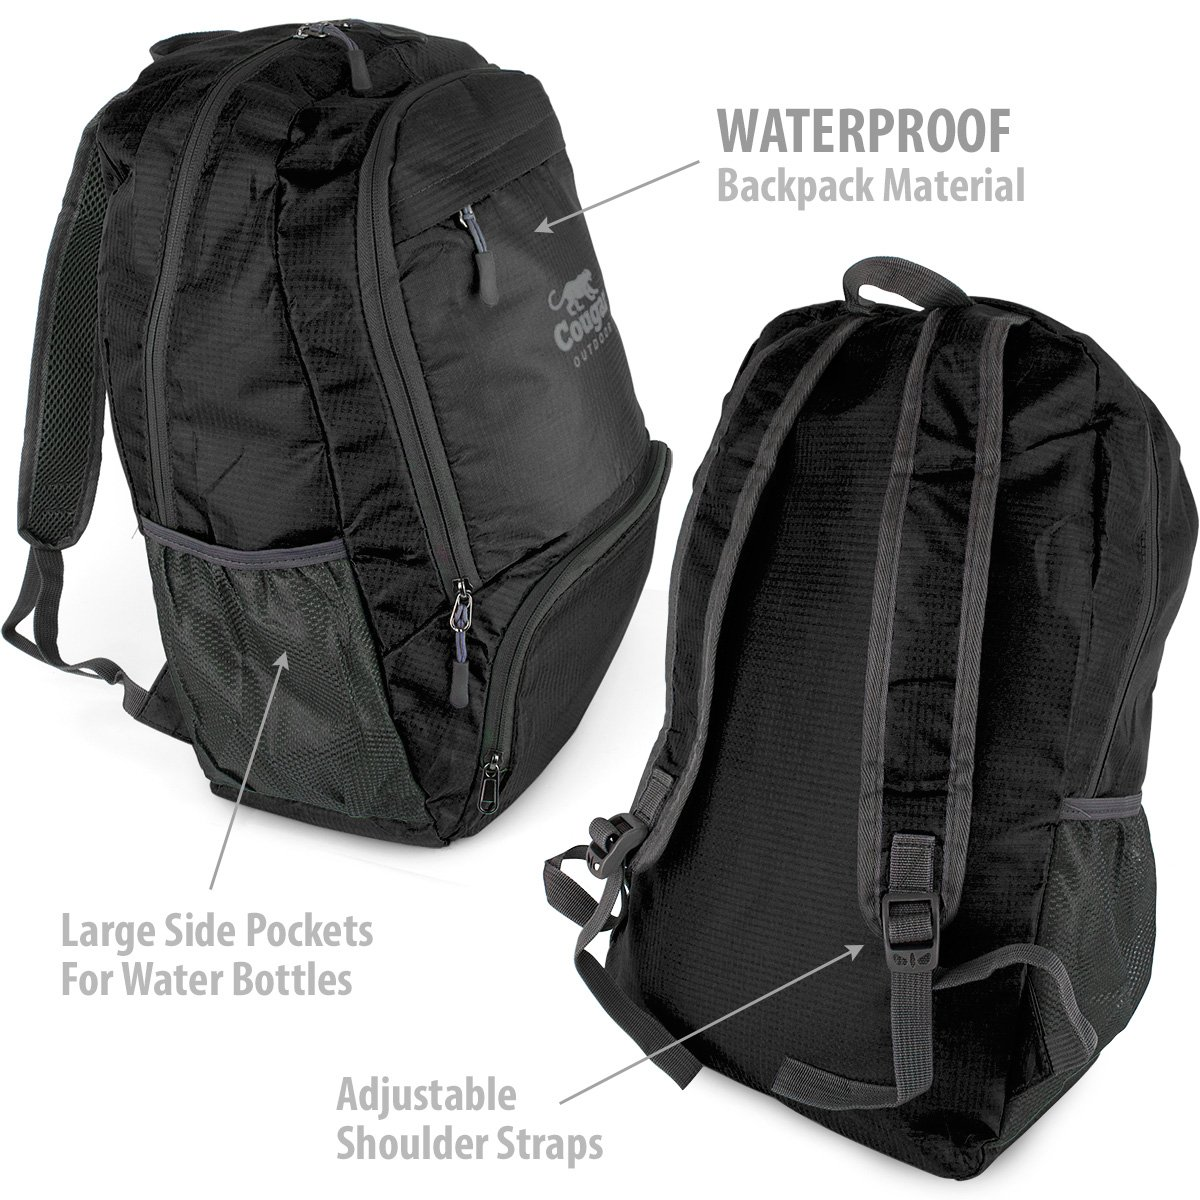 da6e846536ae Amazon.com   Cougar OUTDOOR Lightweight Packable Backpack from ...